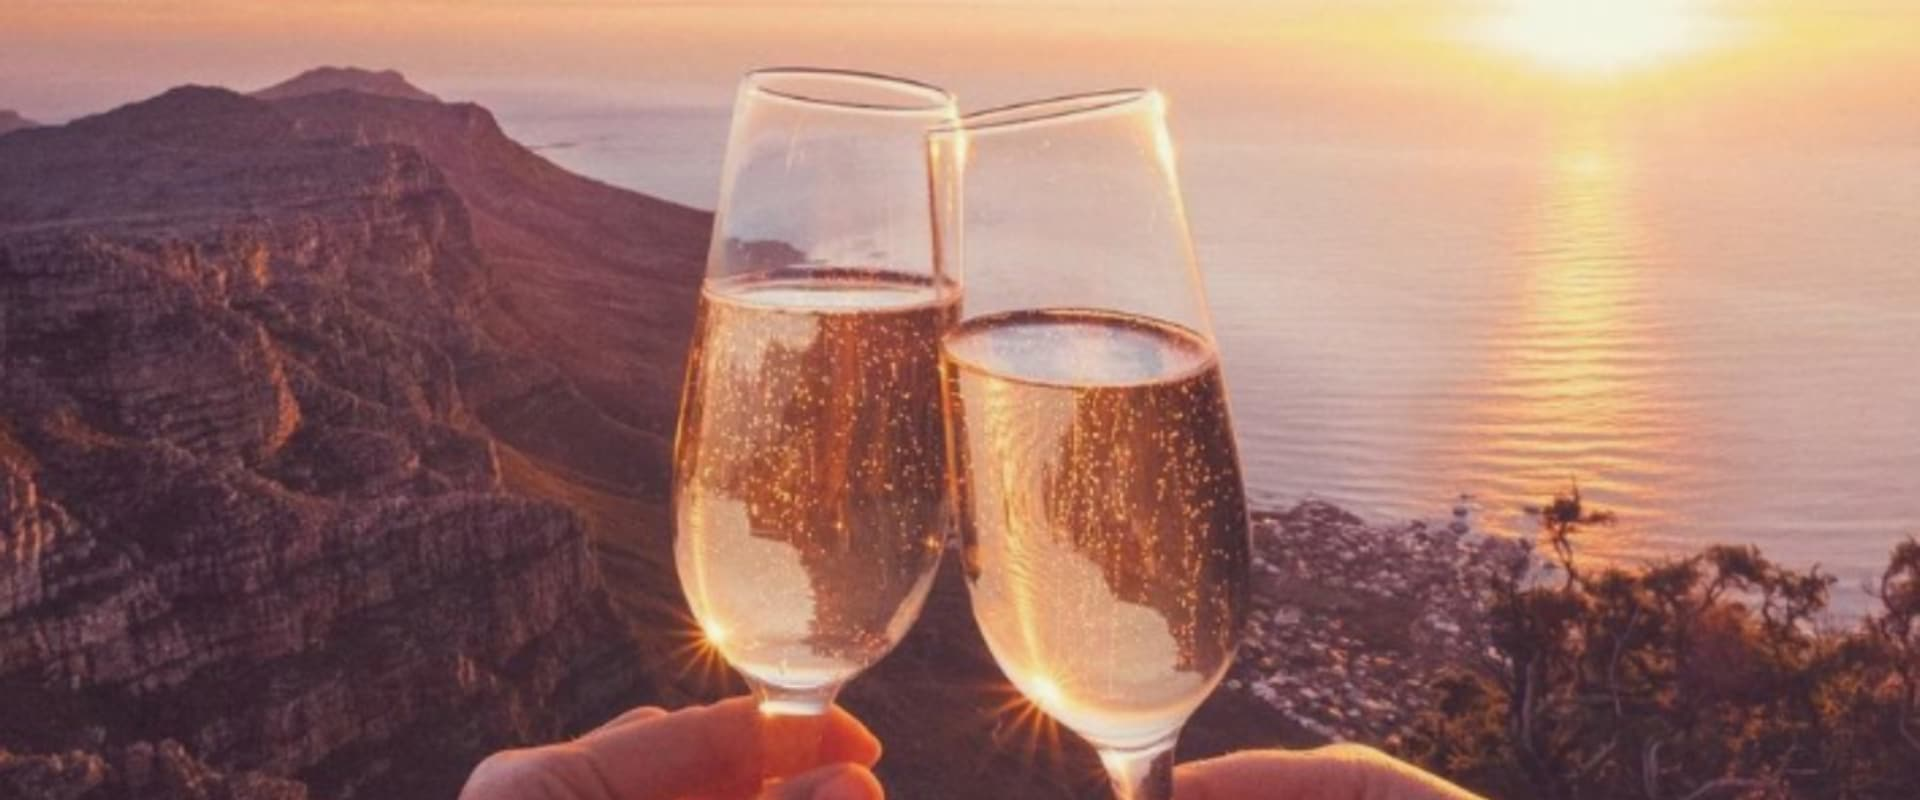 Celebrate the views from the top of Table Mountain